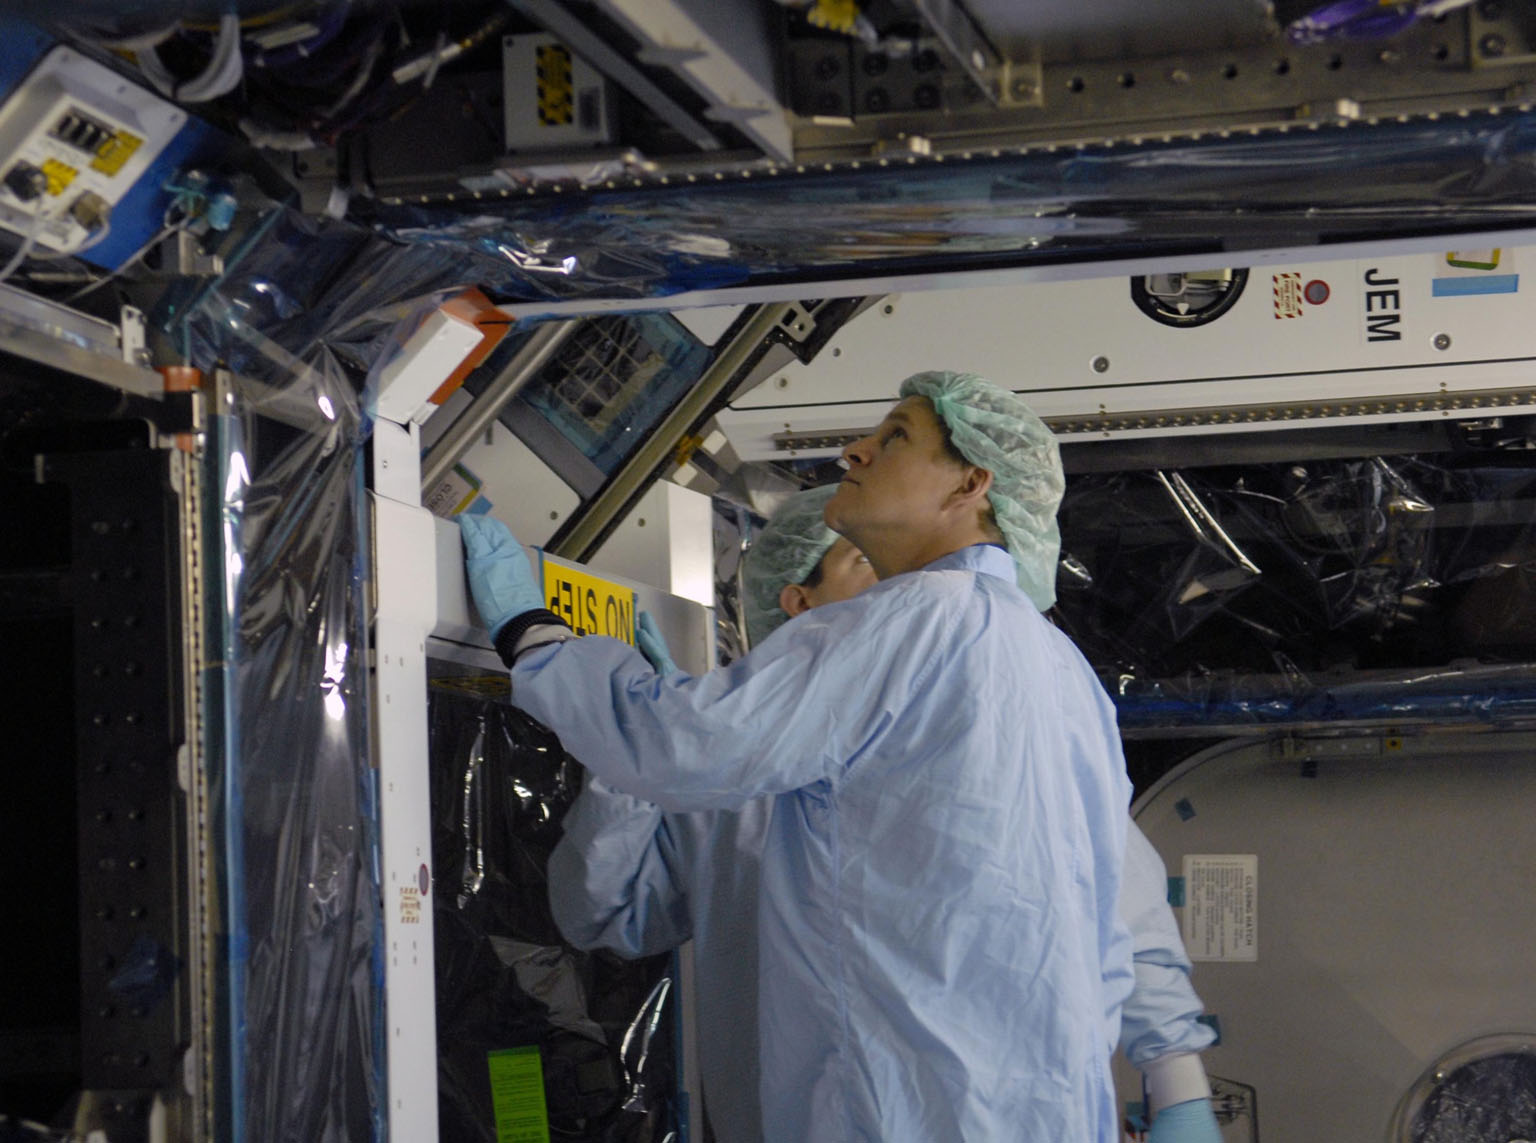 KENNEDY SPACE CENTER, FLA. -- STS-120 Mission Specialist Scott Parazynski takes a look underneath the primary payload for the mission: the U.S. Node 2, another element to be added to the International Space Station. Node 2 will provide a passageway between three station science experiment facilities: the U.S. Destiny Laboratory, the Kibo Japanese Experiment Module, and the European Columbus Laboratory. STS-120 is targeted for launch on Sept. 7 with a crew of six, including Commander Pam Melroy, Pilot George Zamka, and Mission Specialist Mike Foreman. Photo credit: NASA/Kim Shiflett